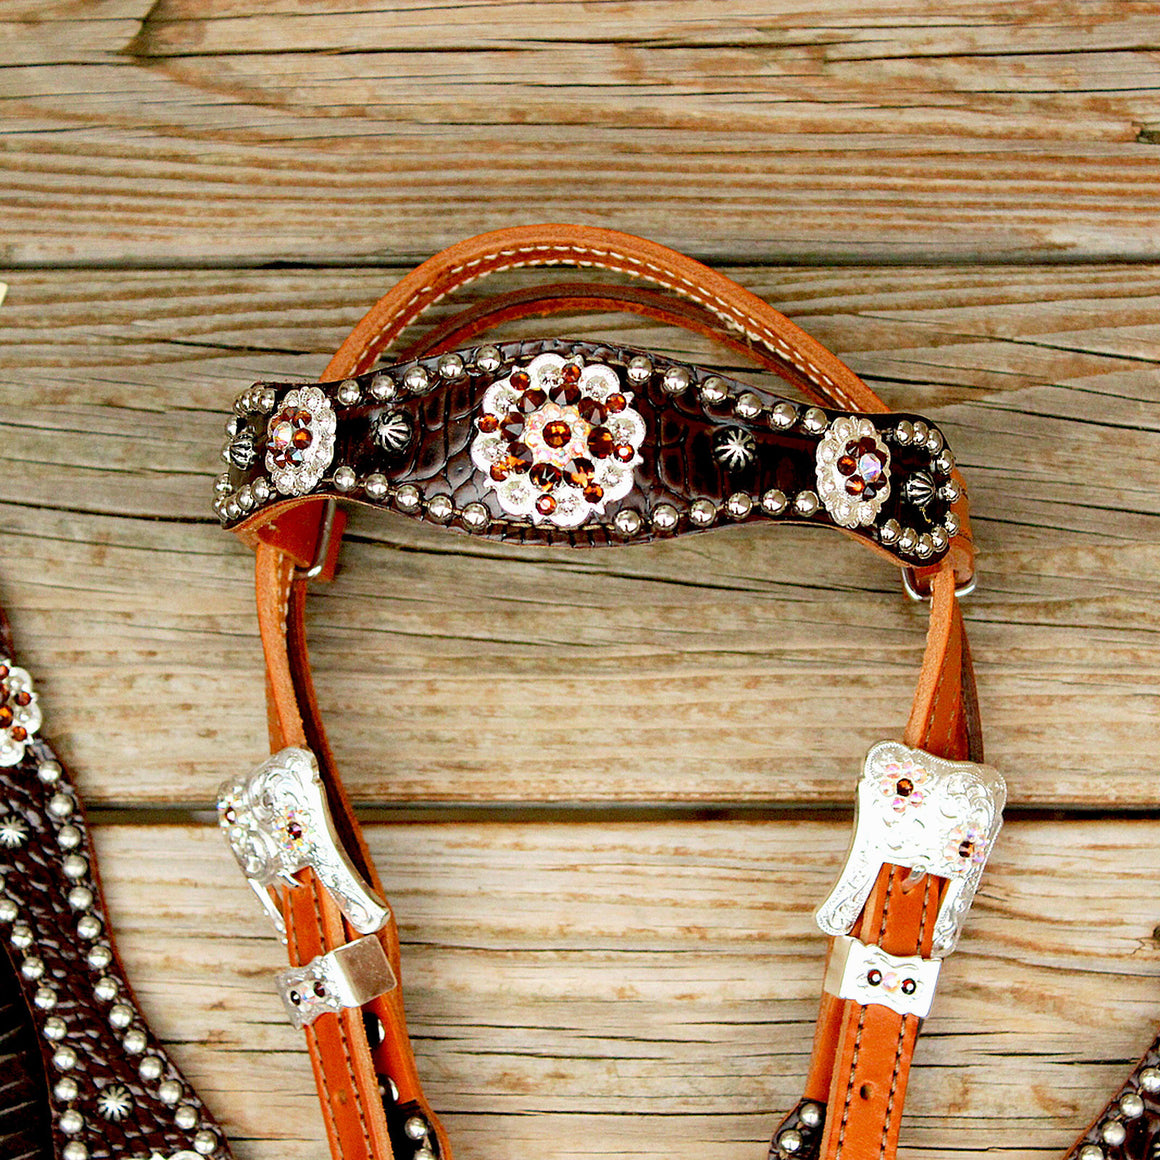 Dk Brown Gator/Tan Leather Fringe Browband Tack Set w/AB-Smk Topaz Crystal Rhinestone Conchos